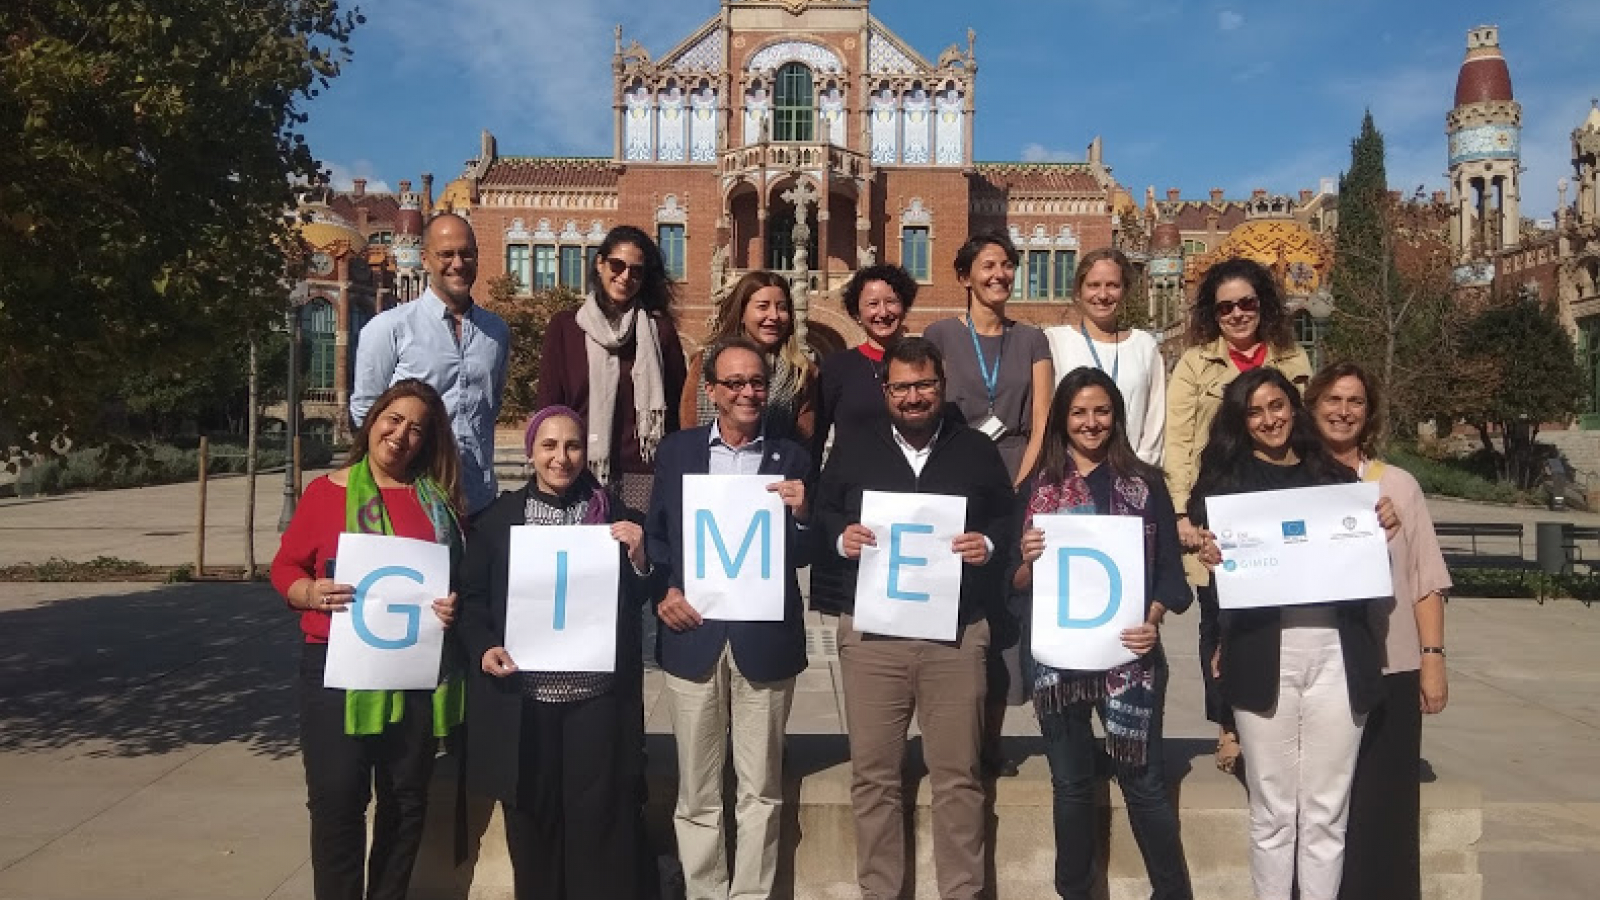 Welcoming GIMED:  a genuine springboard for green entrepreneurs' access to finance and markets in the Mediterranean